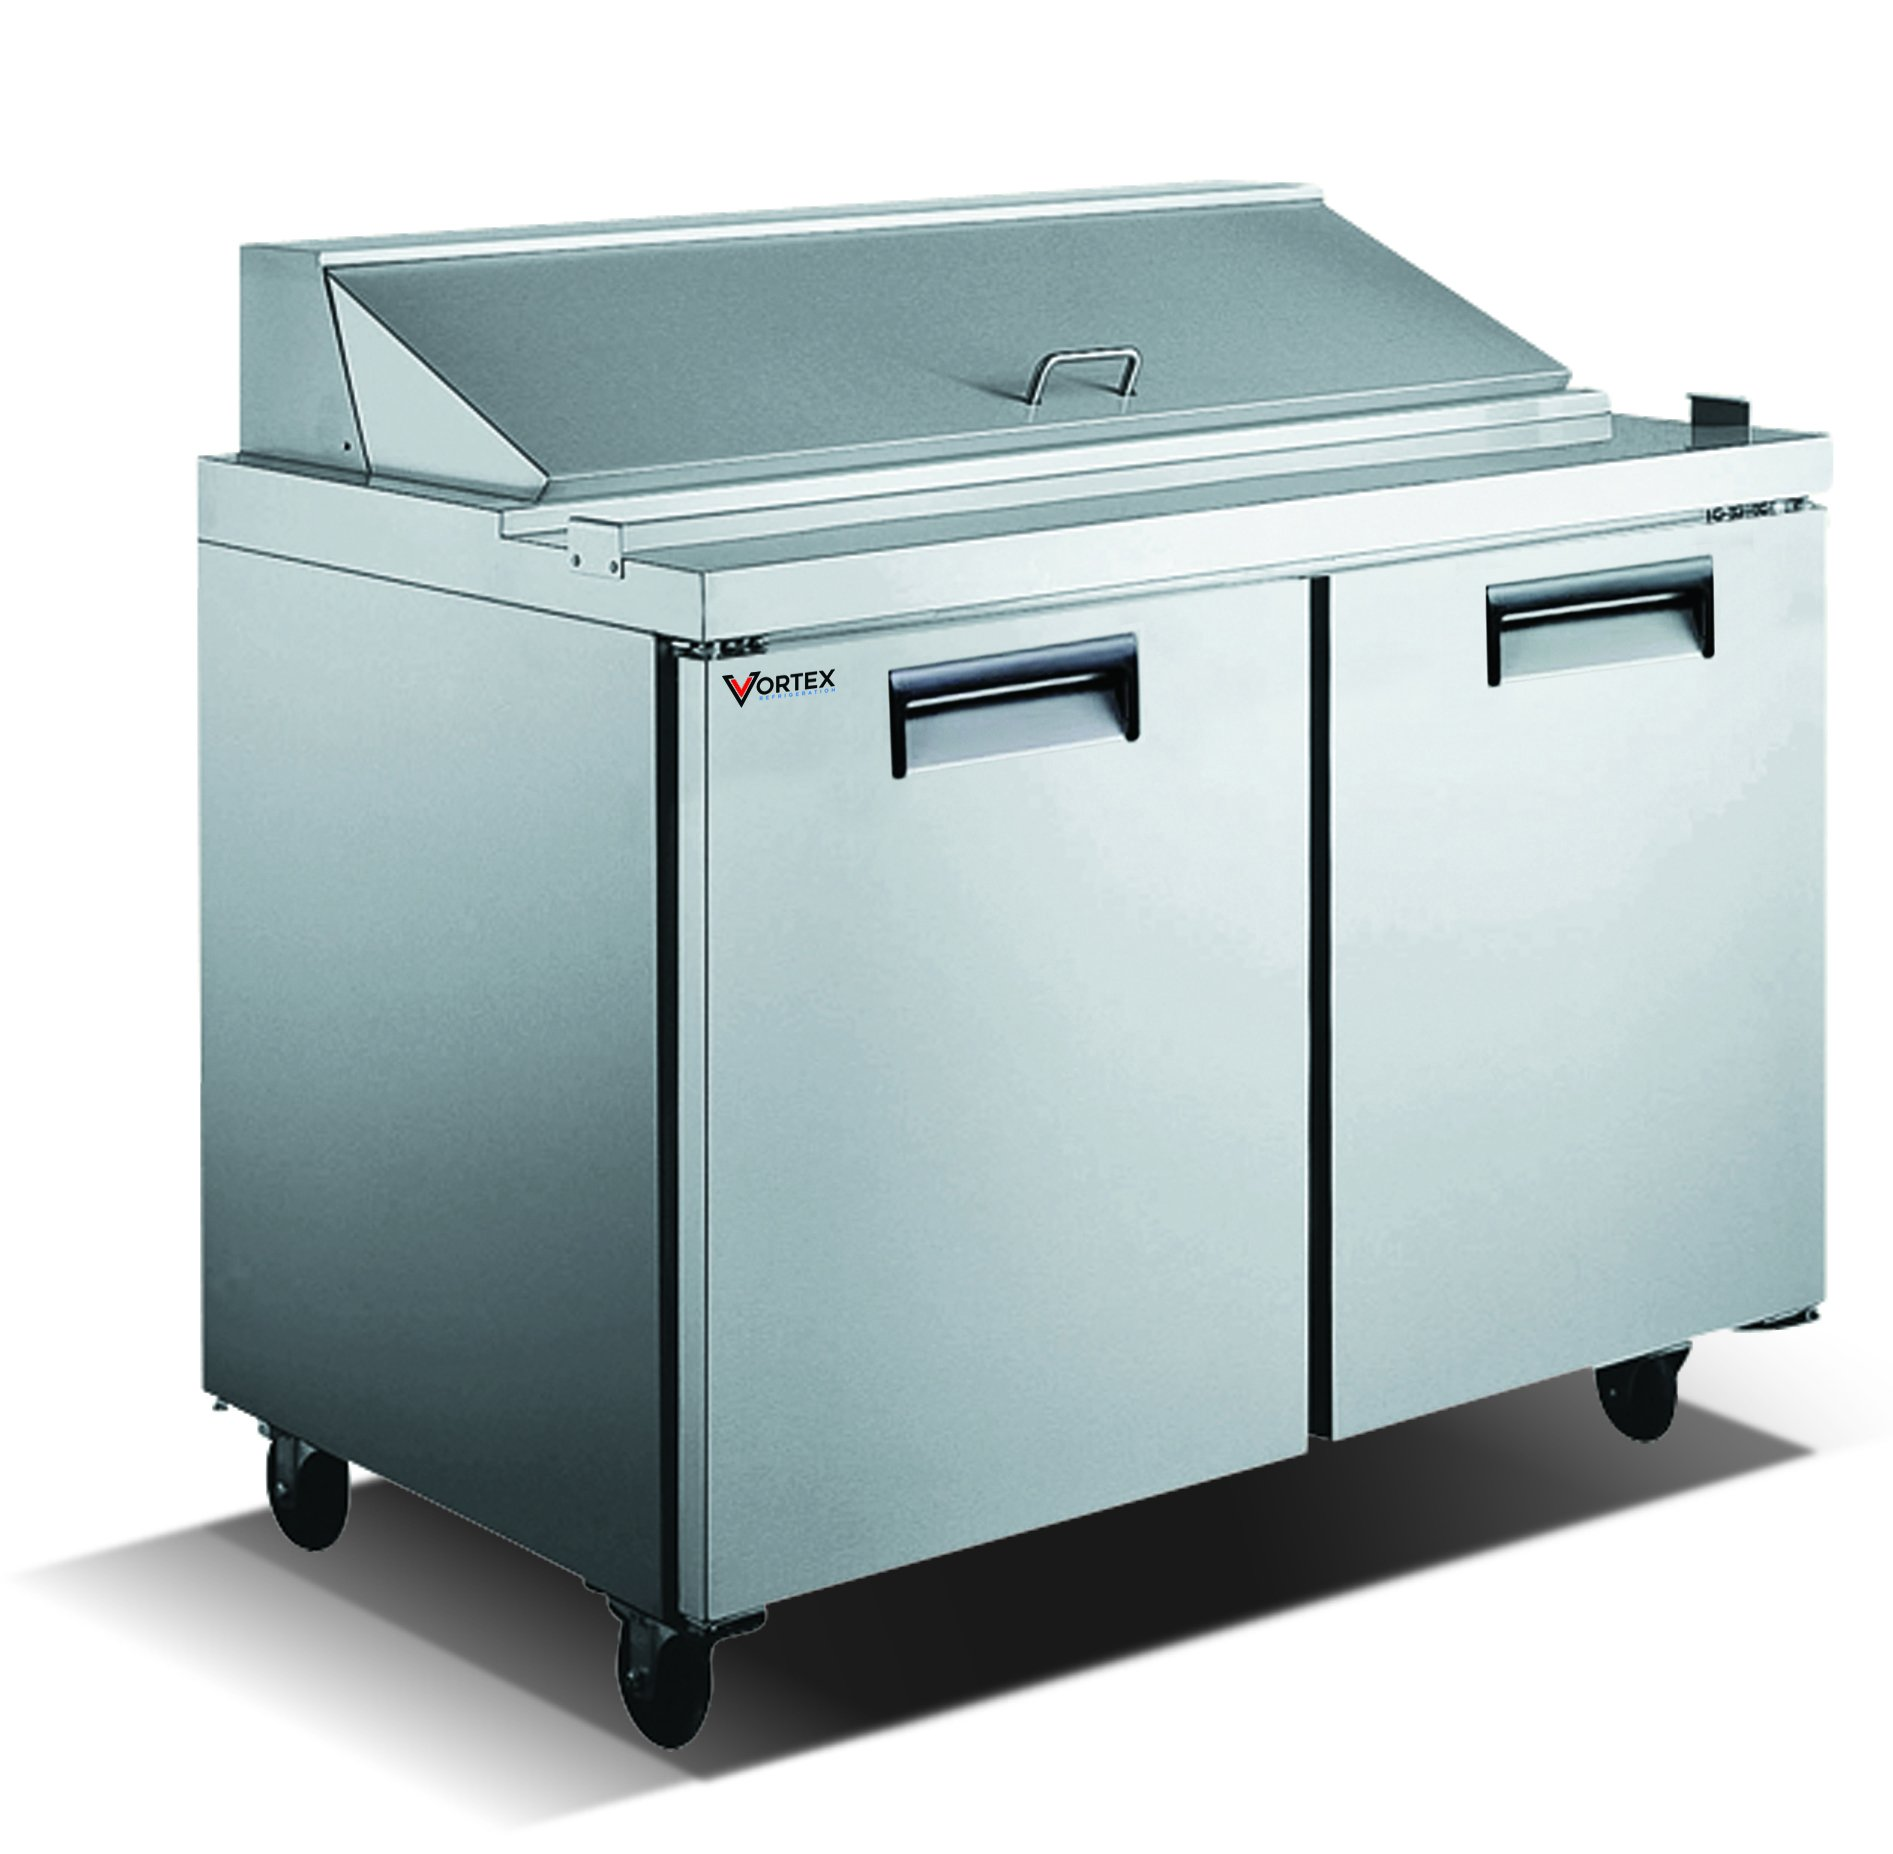 Vortex Refrigeration Commercial 2 Door 60'', 16 Pan Sandwich Prep Table - 15 Cu. Ft. by Vortex